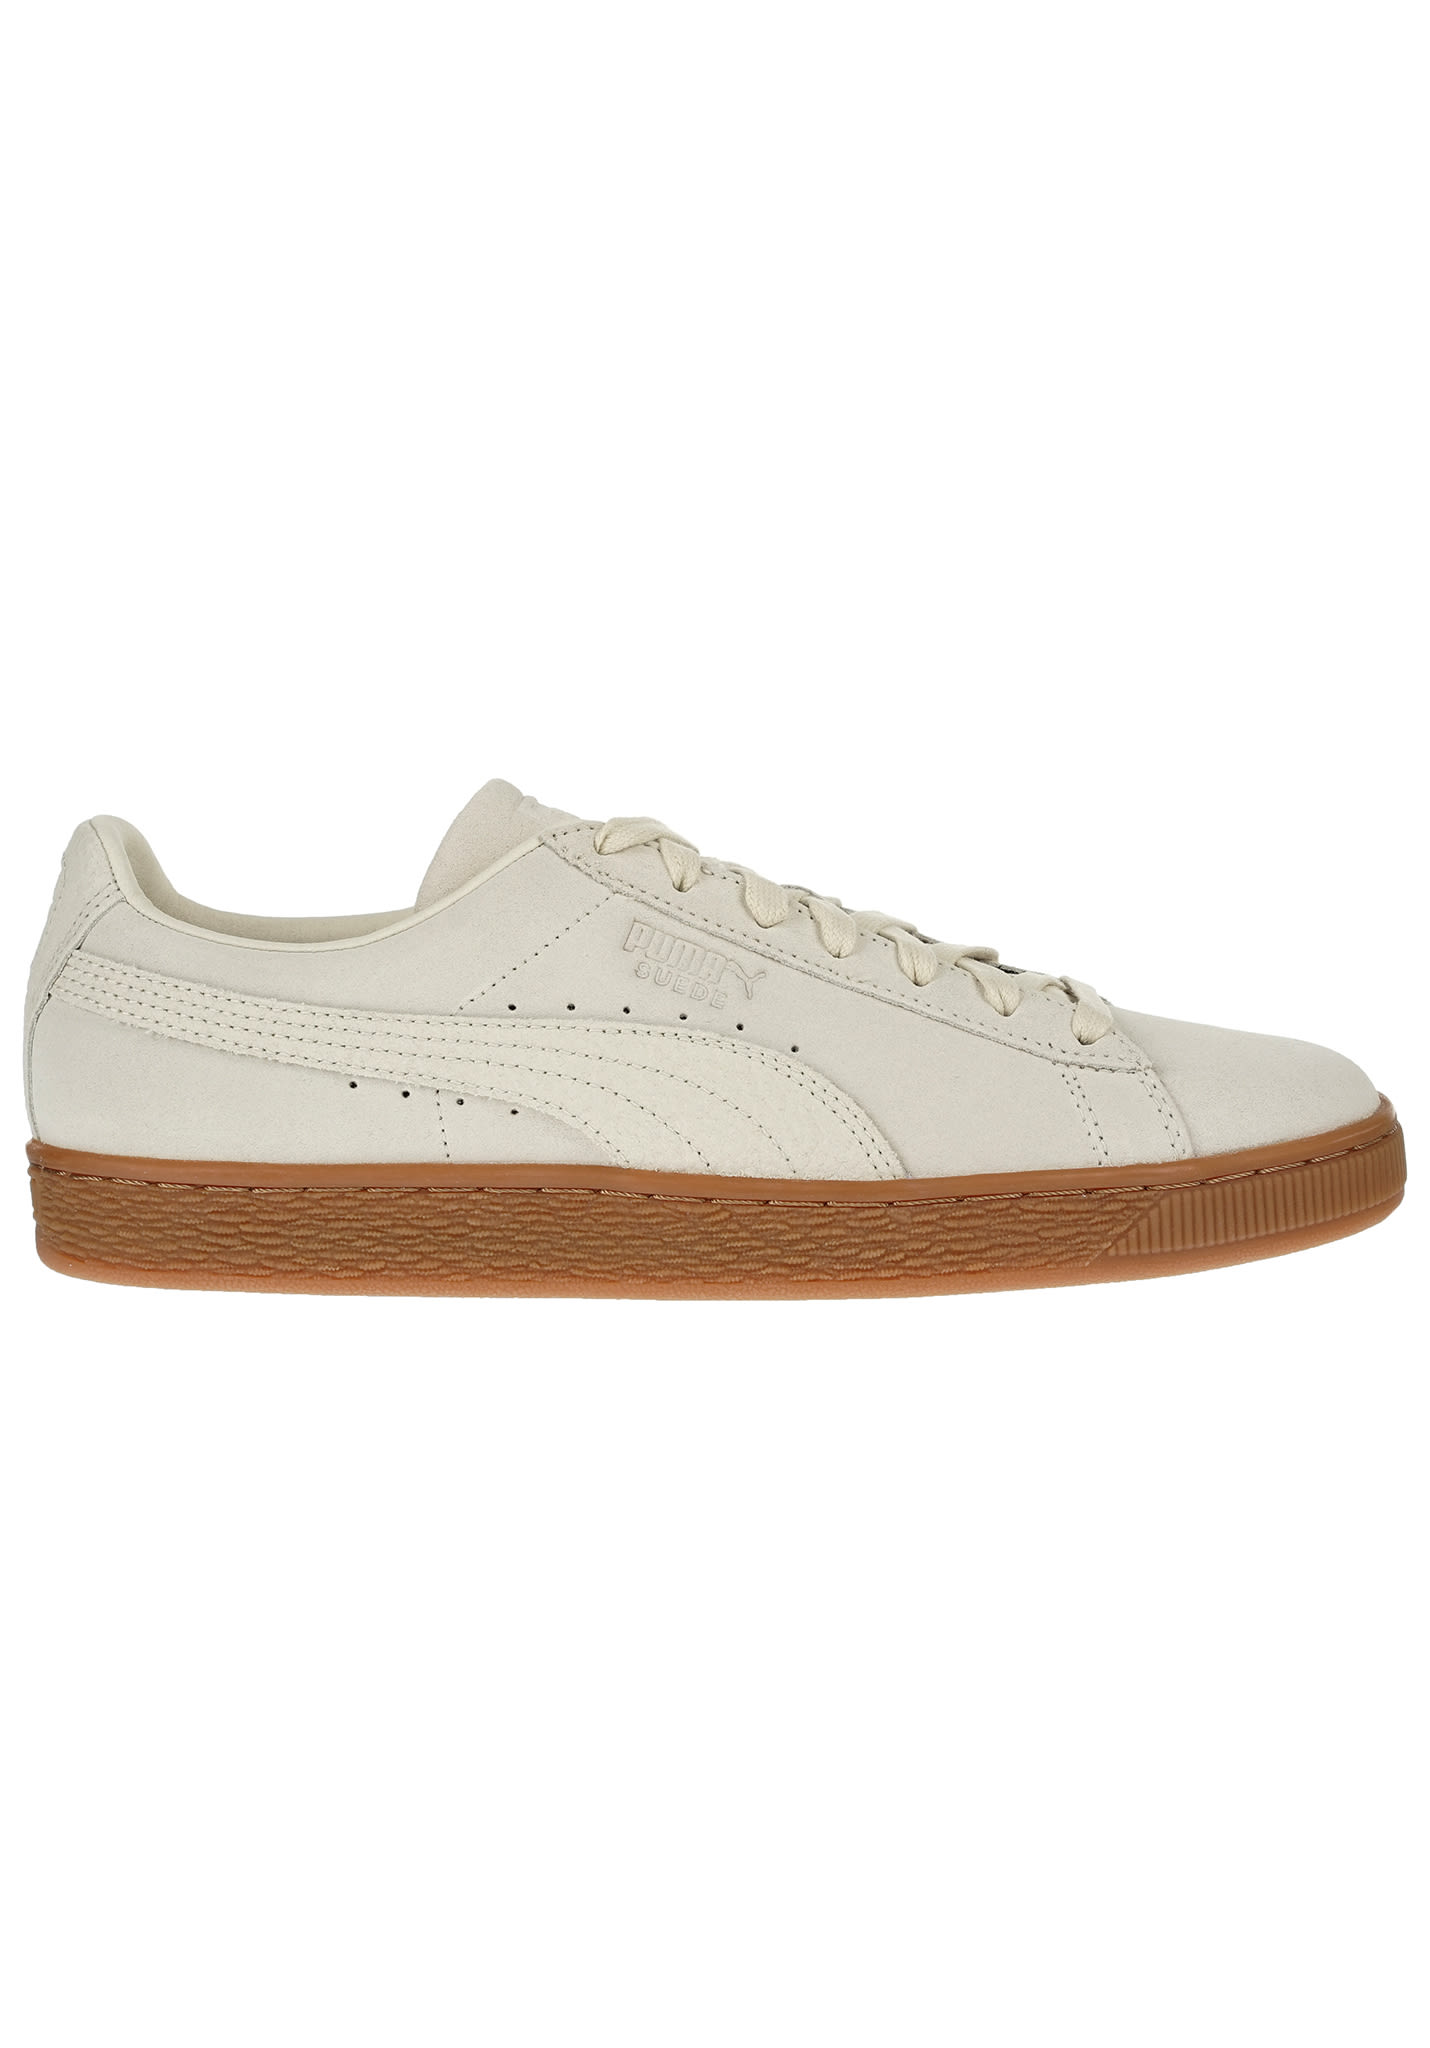 ca90e8a07ff Puma Suede Classic Natural Warmth - Sneakers - Beige - Planet Sports